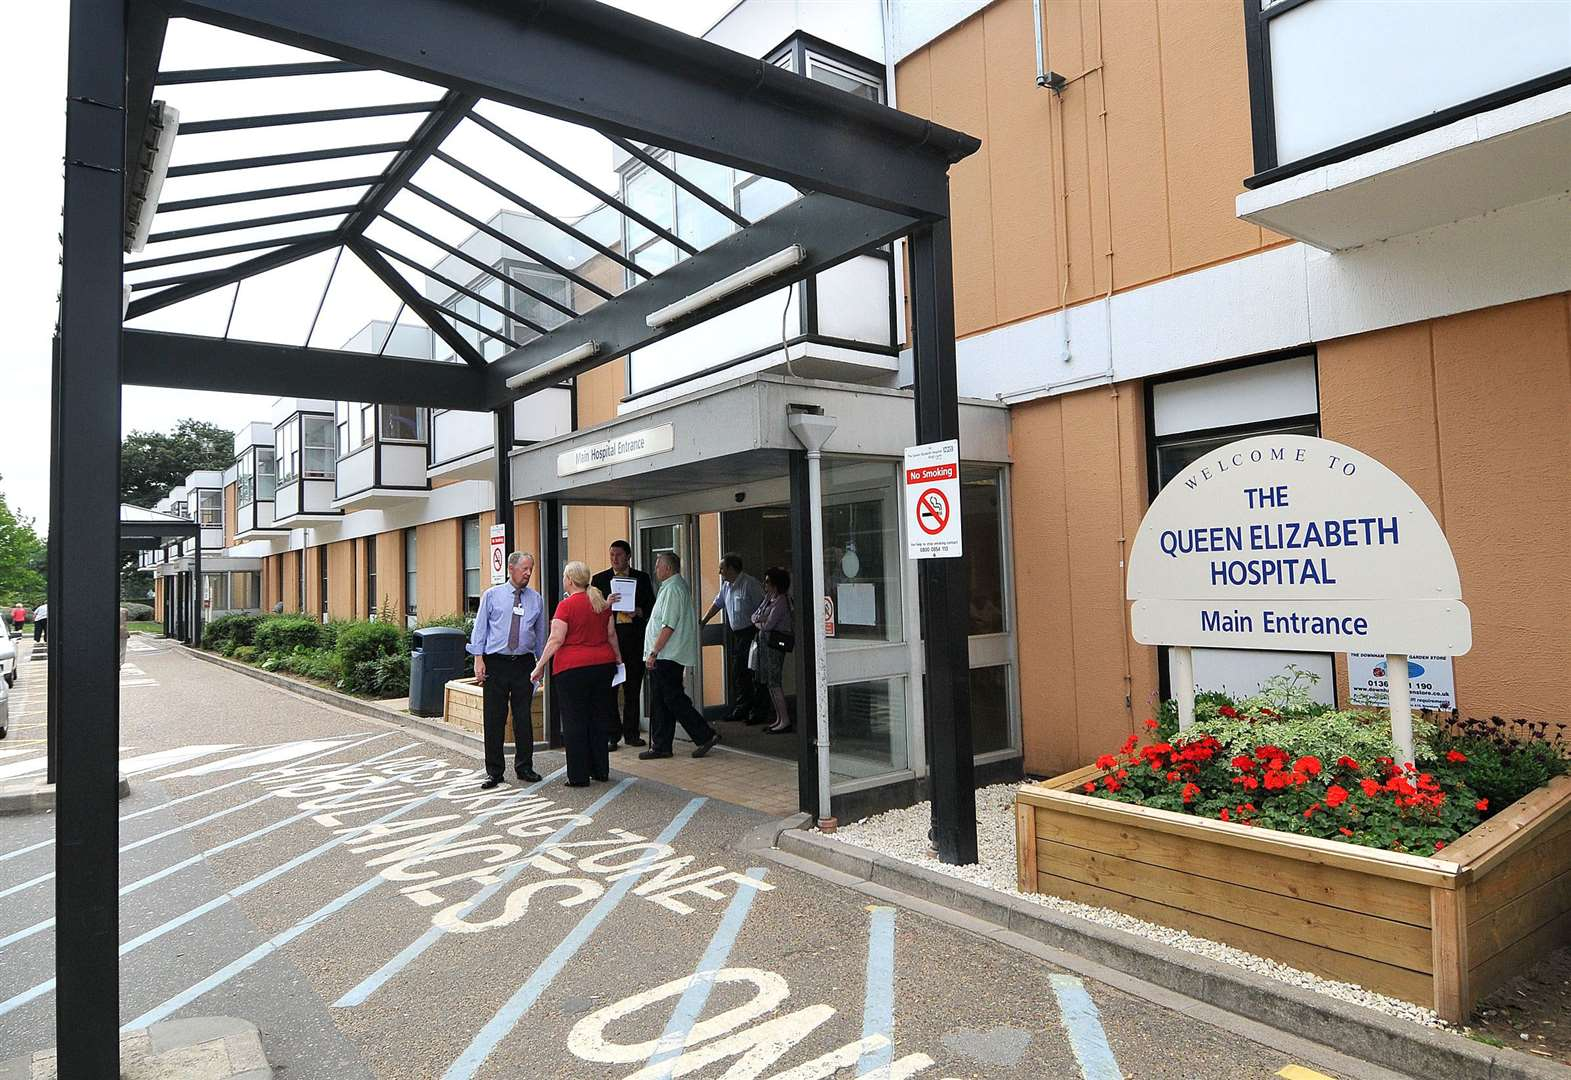 1-in-5 wait for cancer treatment at King's Lynn